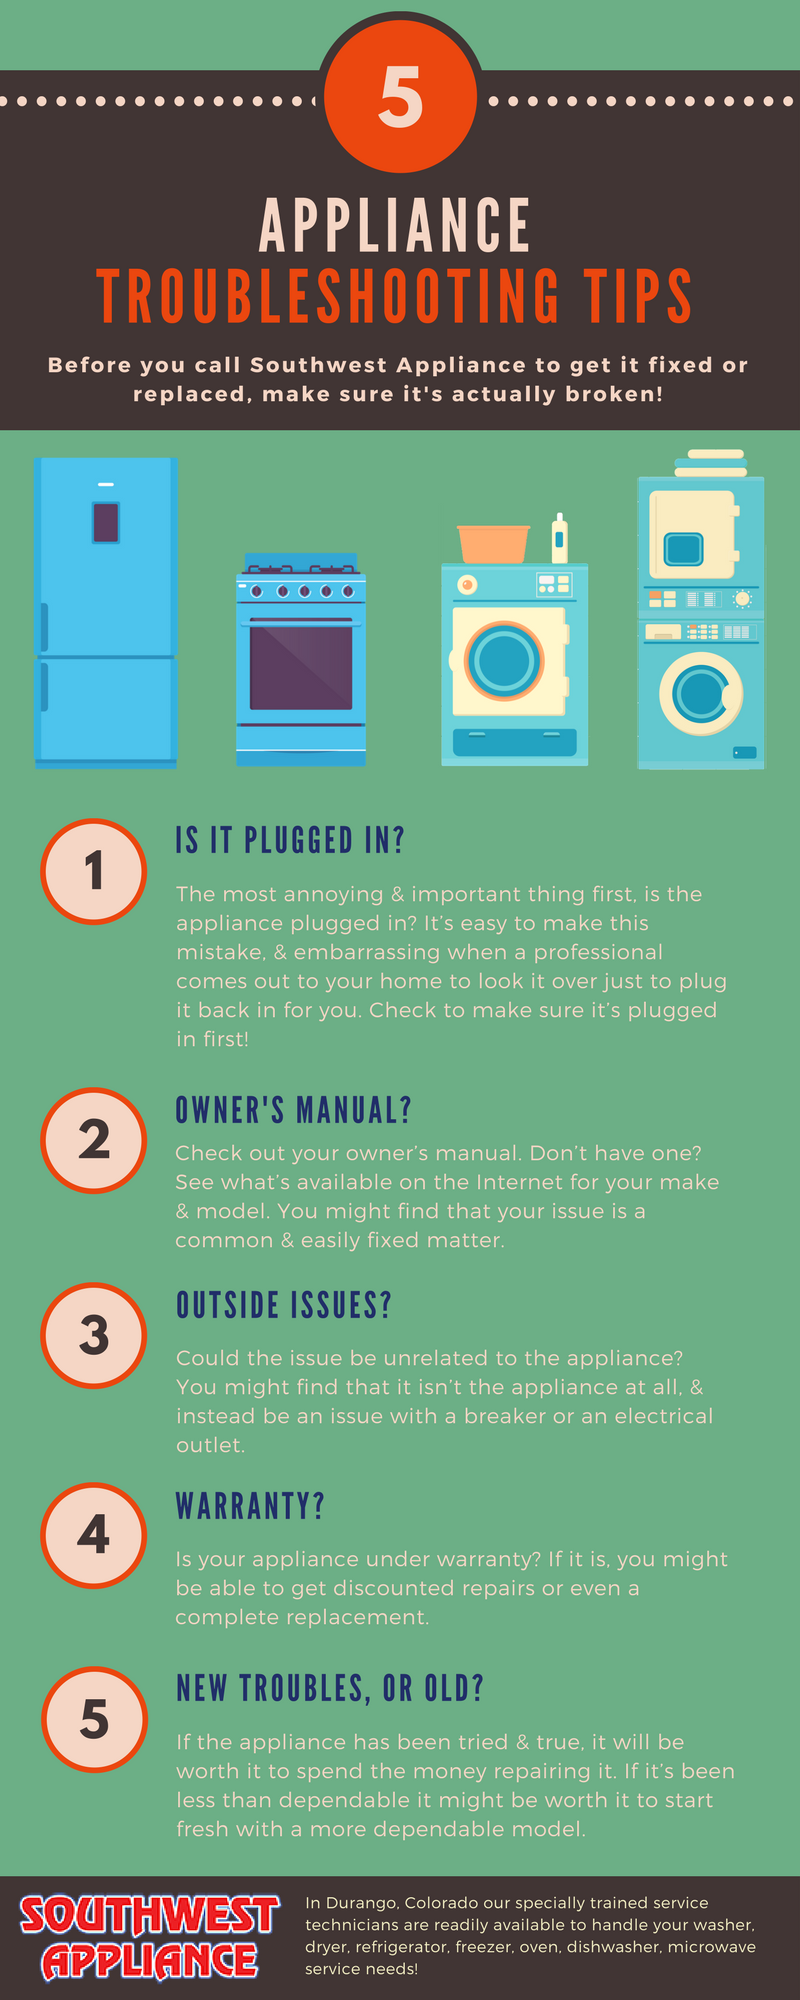 5 Appliance Troubleshooting Tips